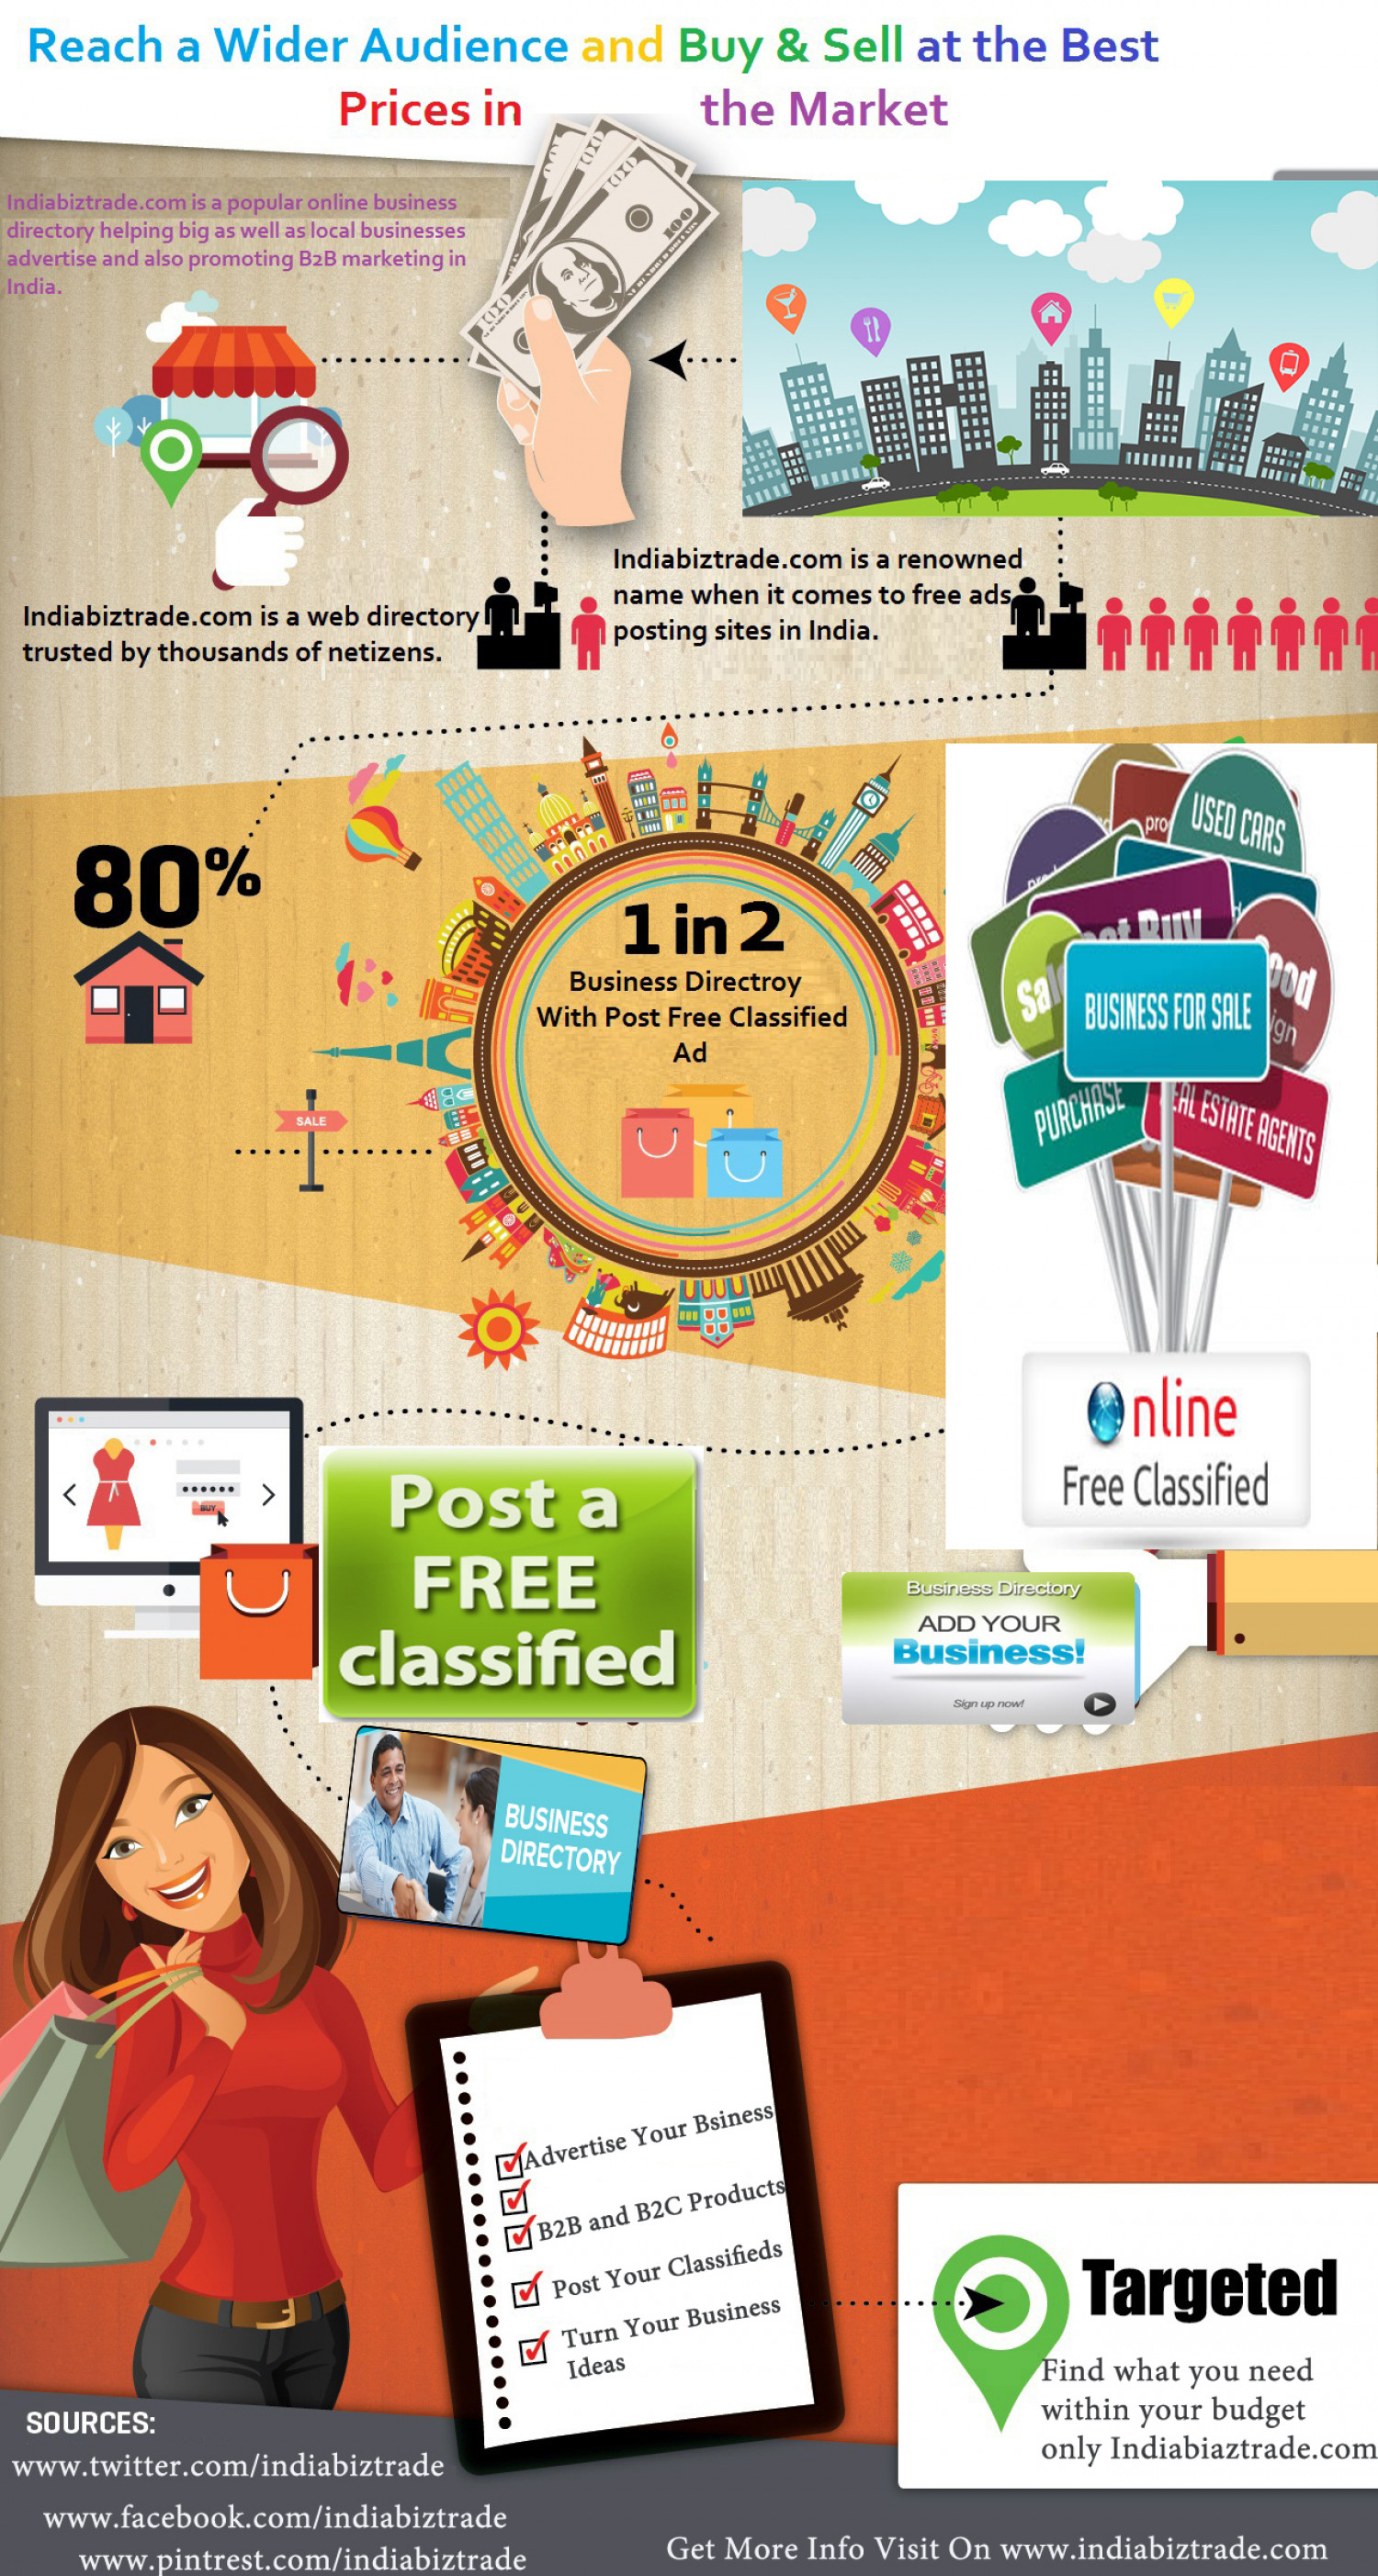 Top Business Directory - All B2B and B2C Products and Services Infographic